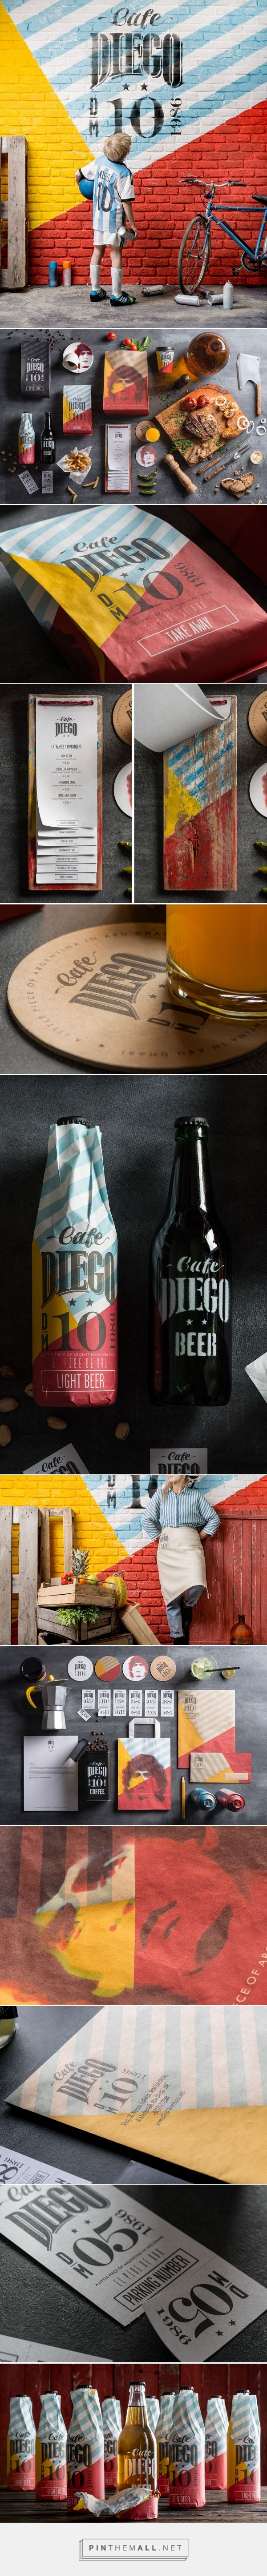 Cafe Diego Branding on Behance